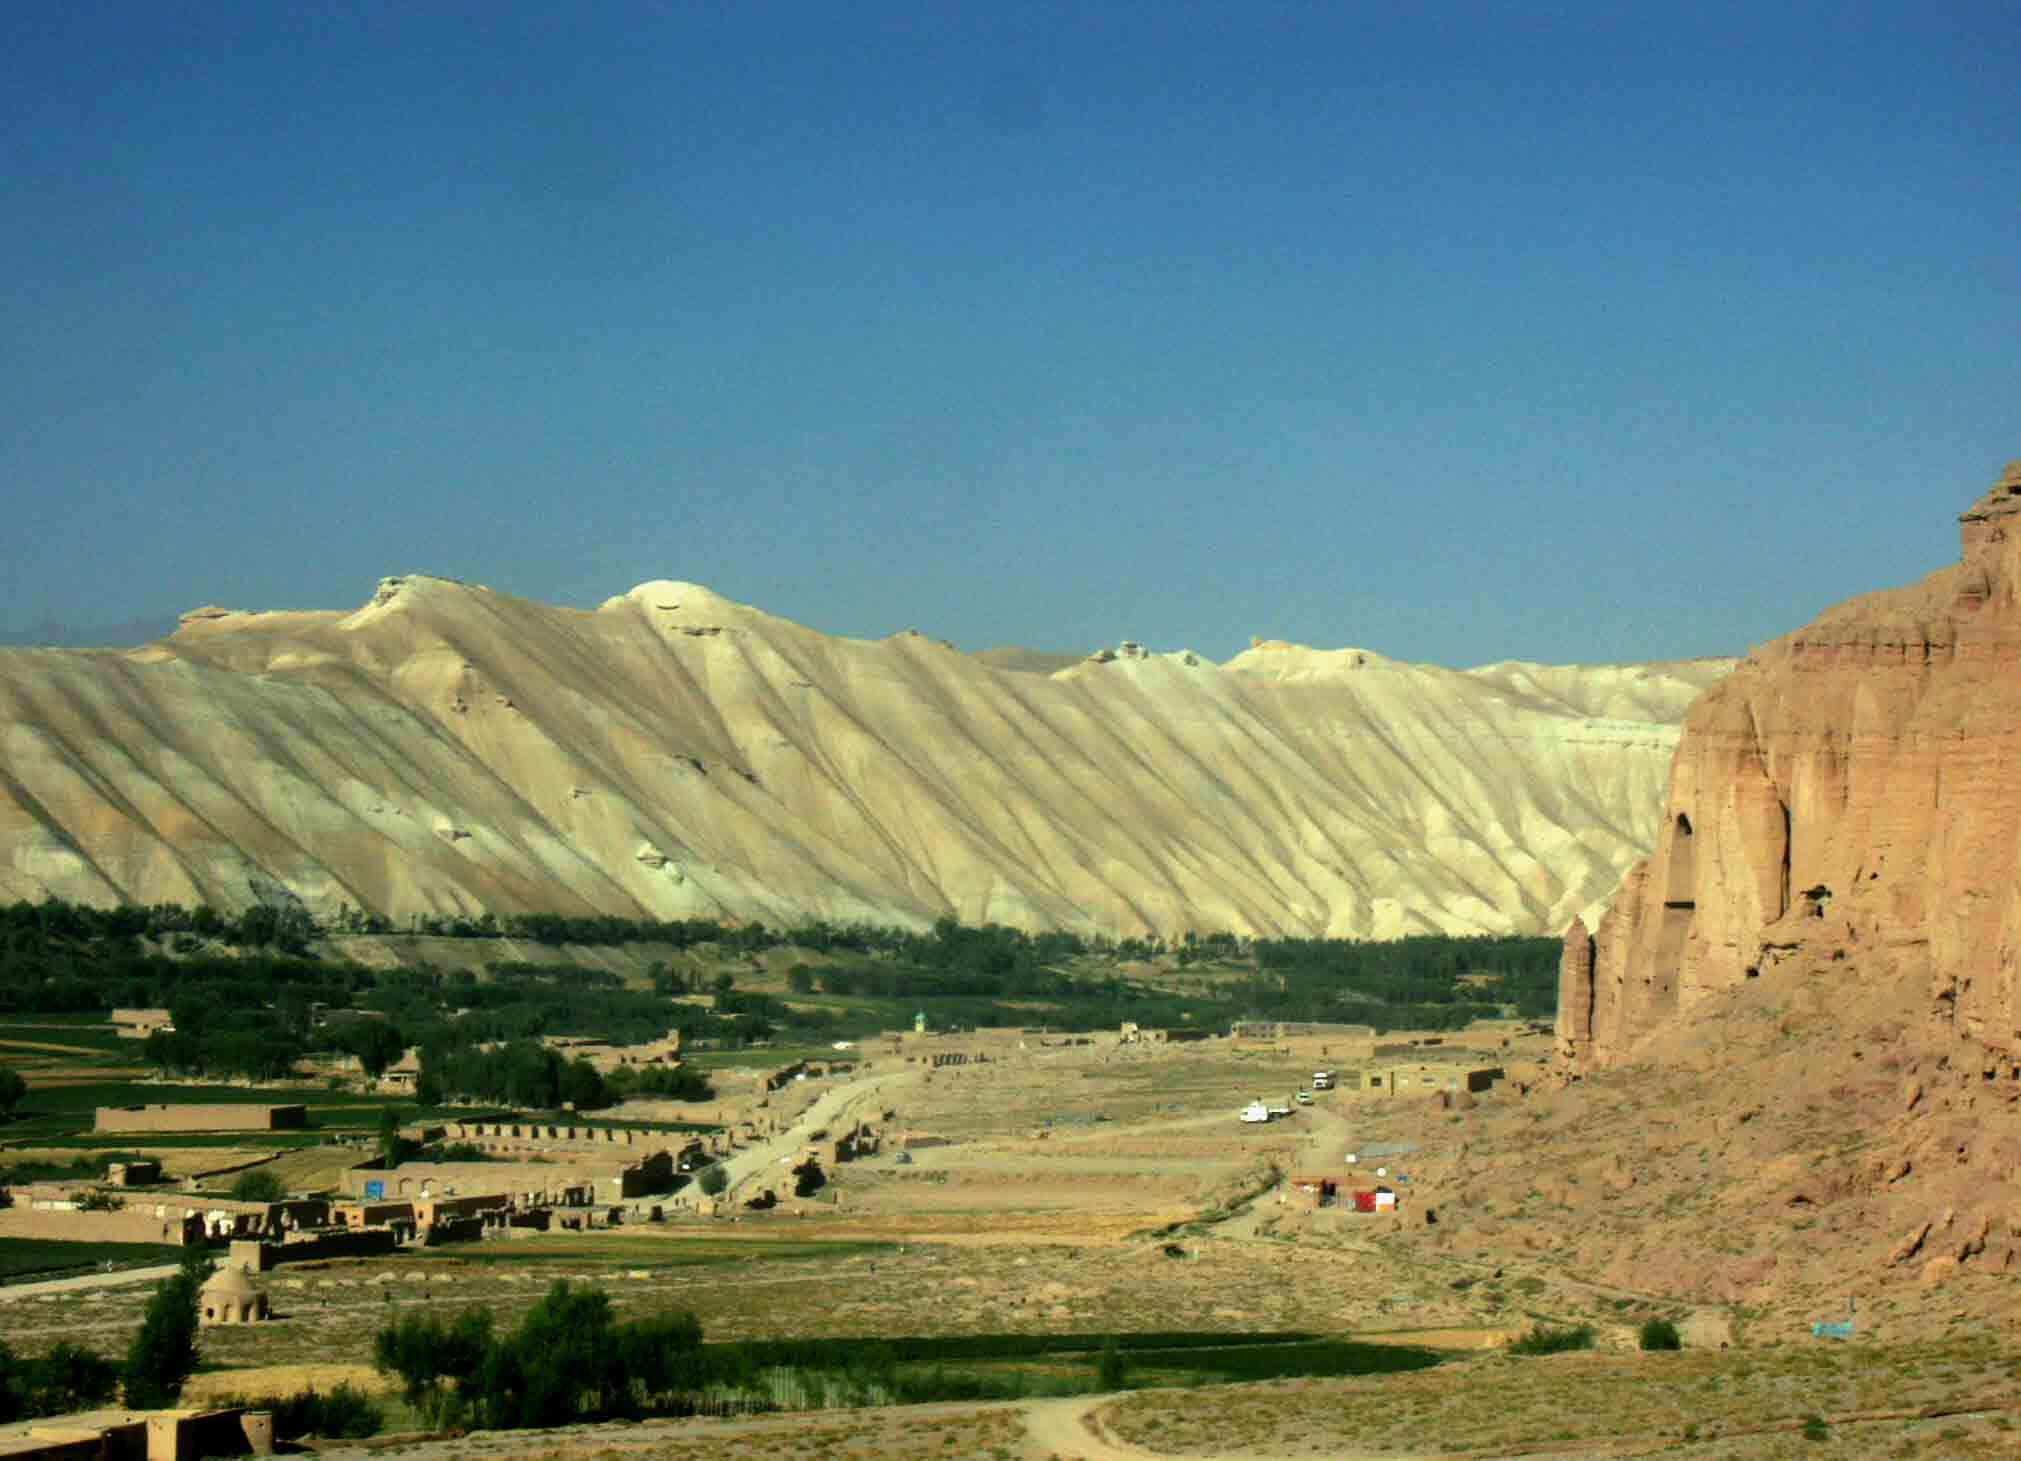 the starkness of bamiyan valley author downs jim